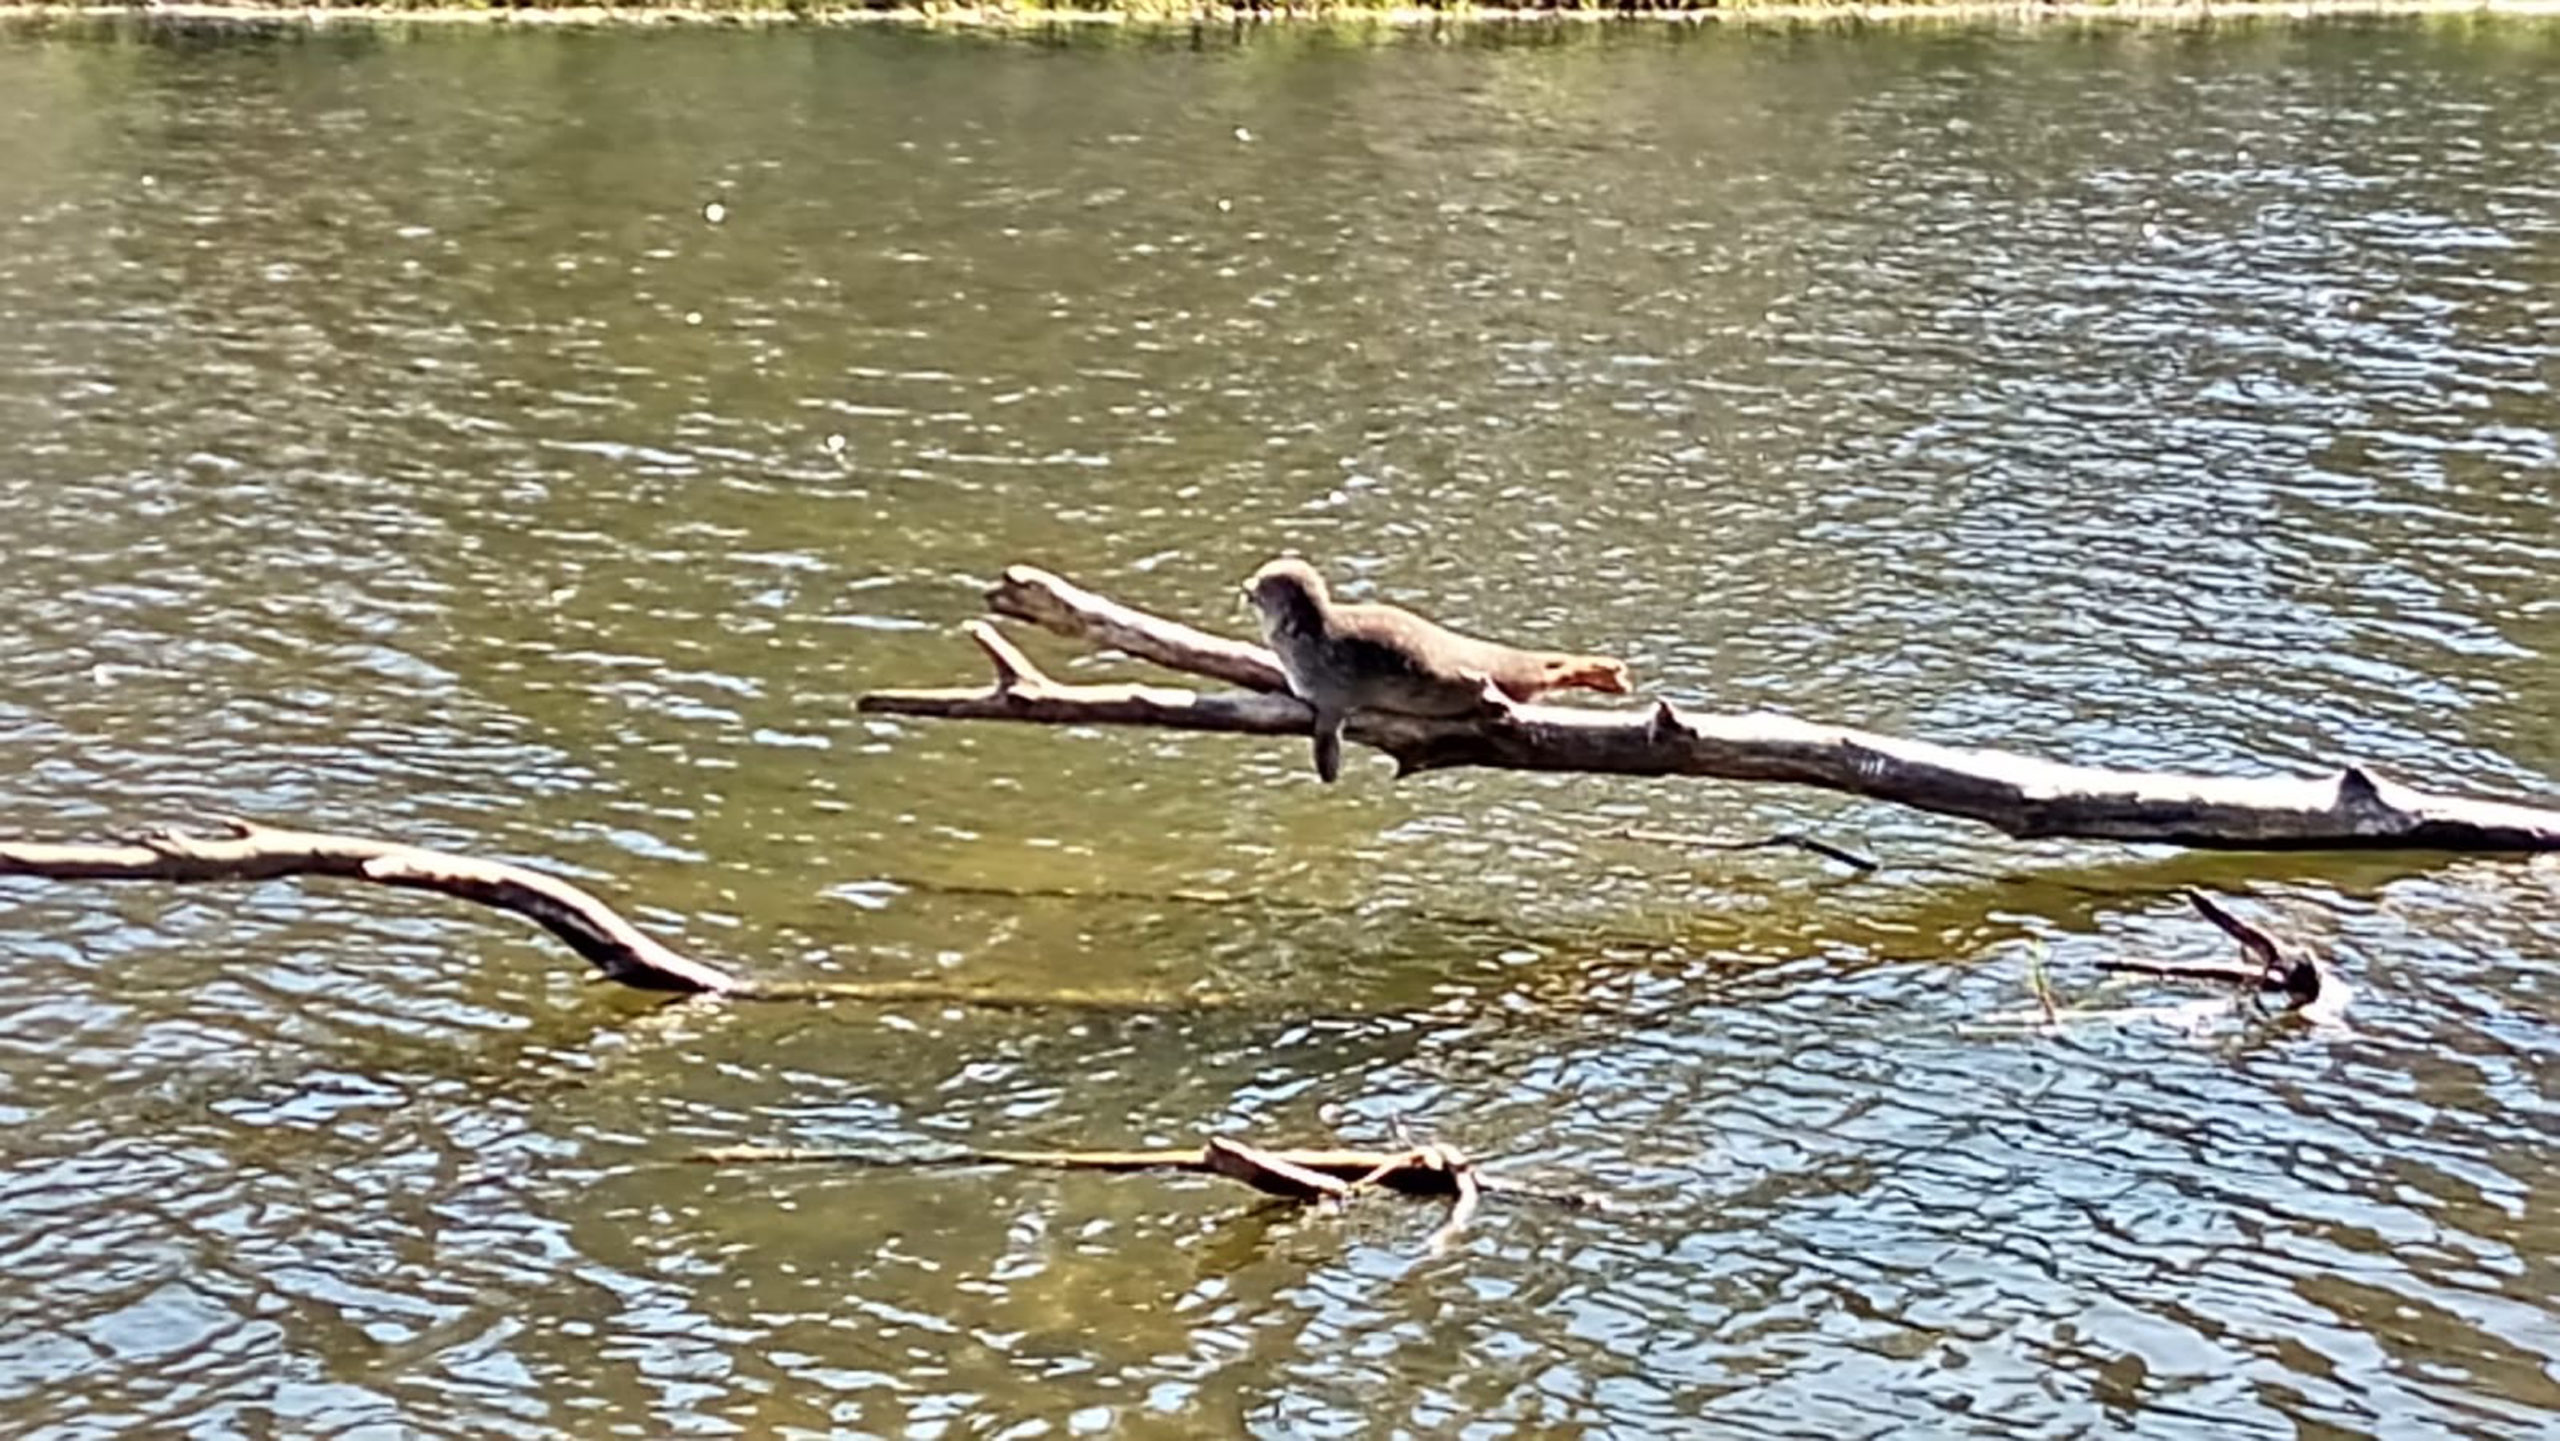 The seal spotted on the tree branch by the River Don. Picture by Jamie Durent.